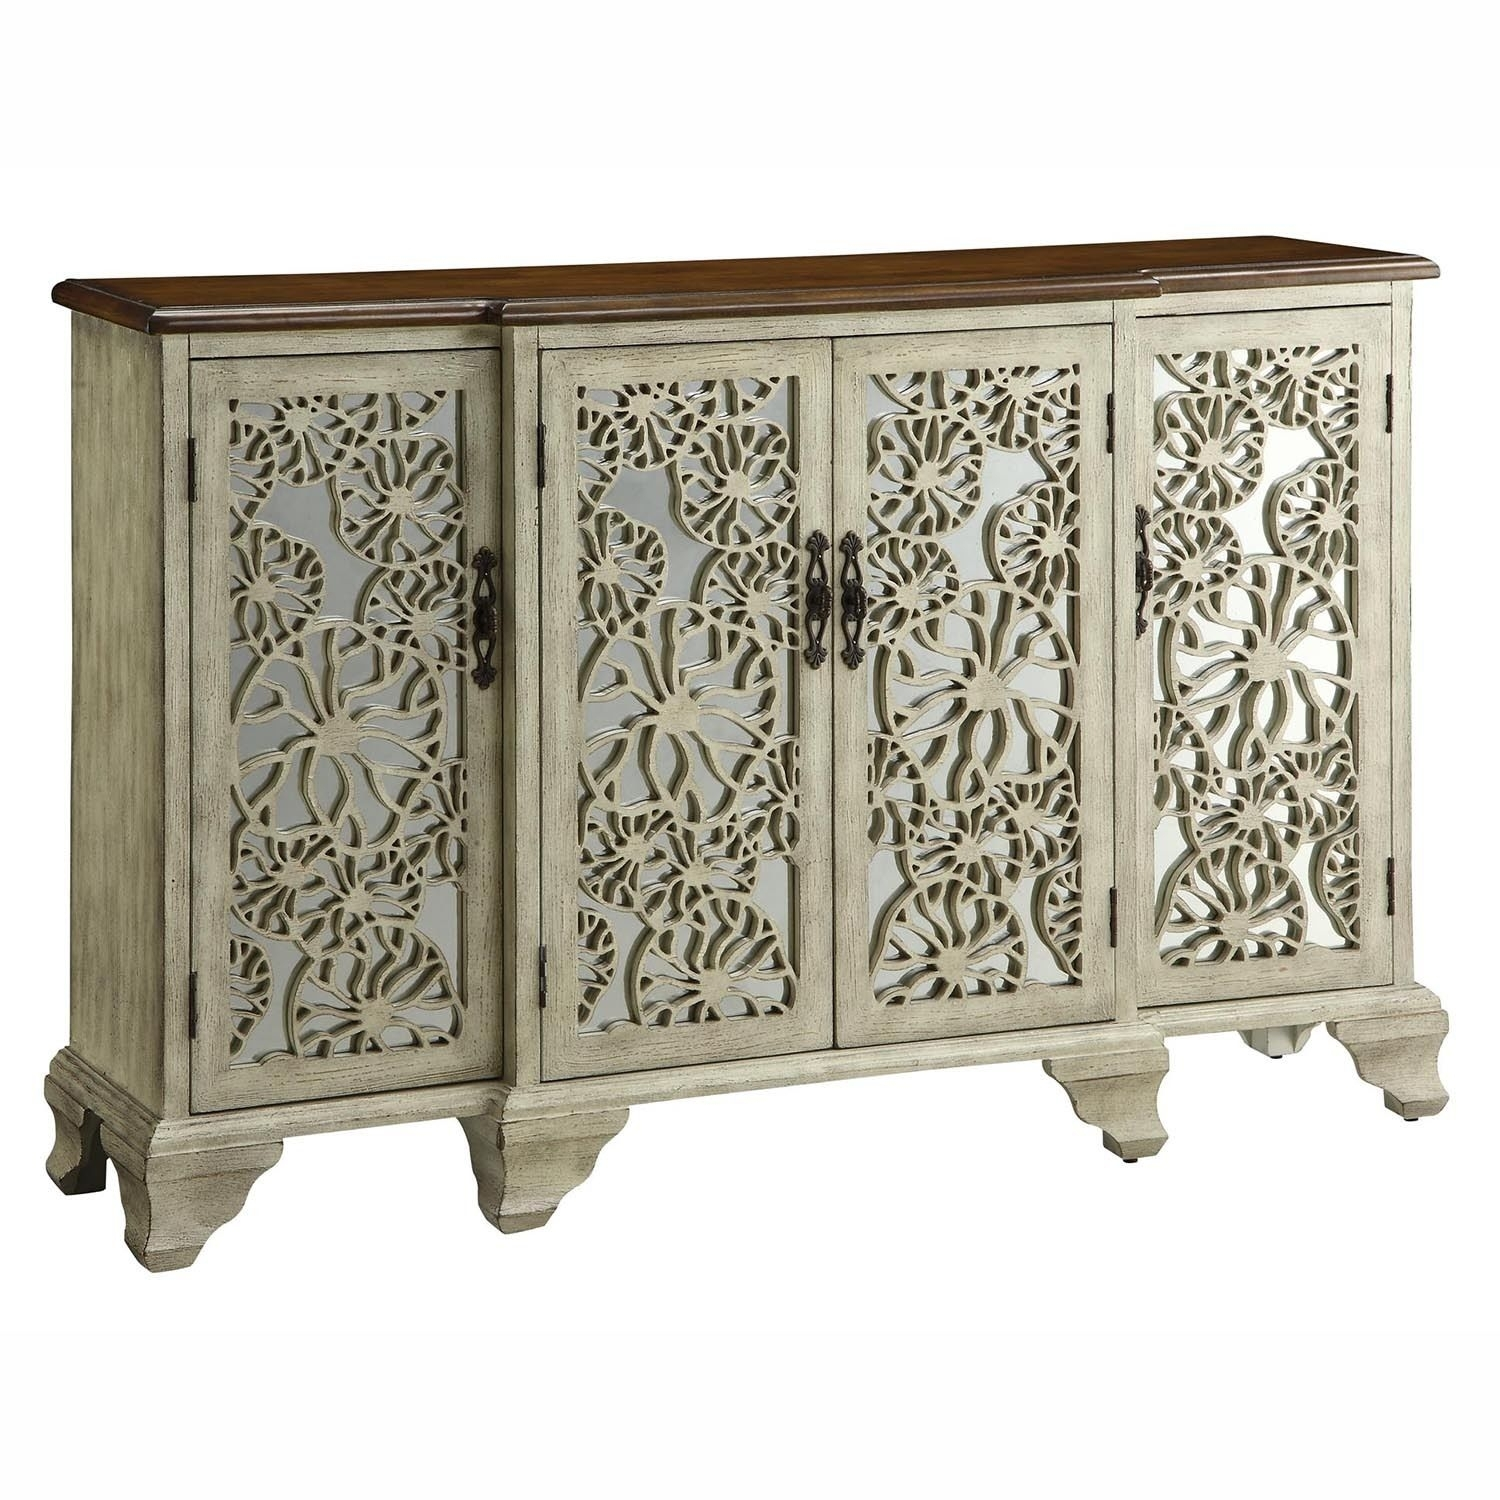 Inspiration about Gorgeous Antique White Wood 4 Mirrored Doors Sideboard Buffet In 2017 Aged Mirrored 4 Door Sideboards (#3 of 20)